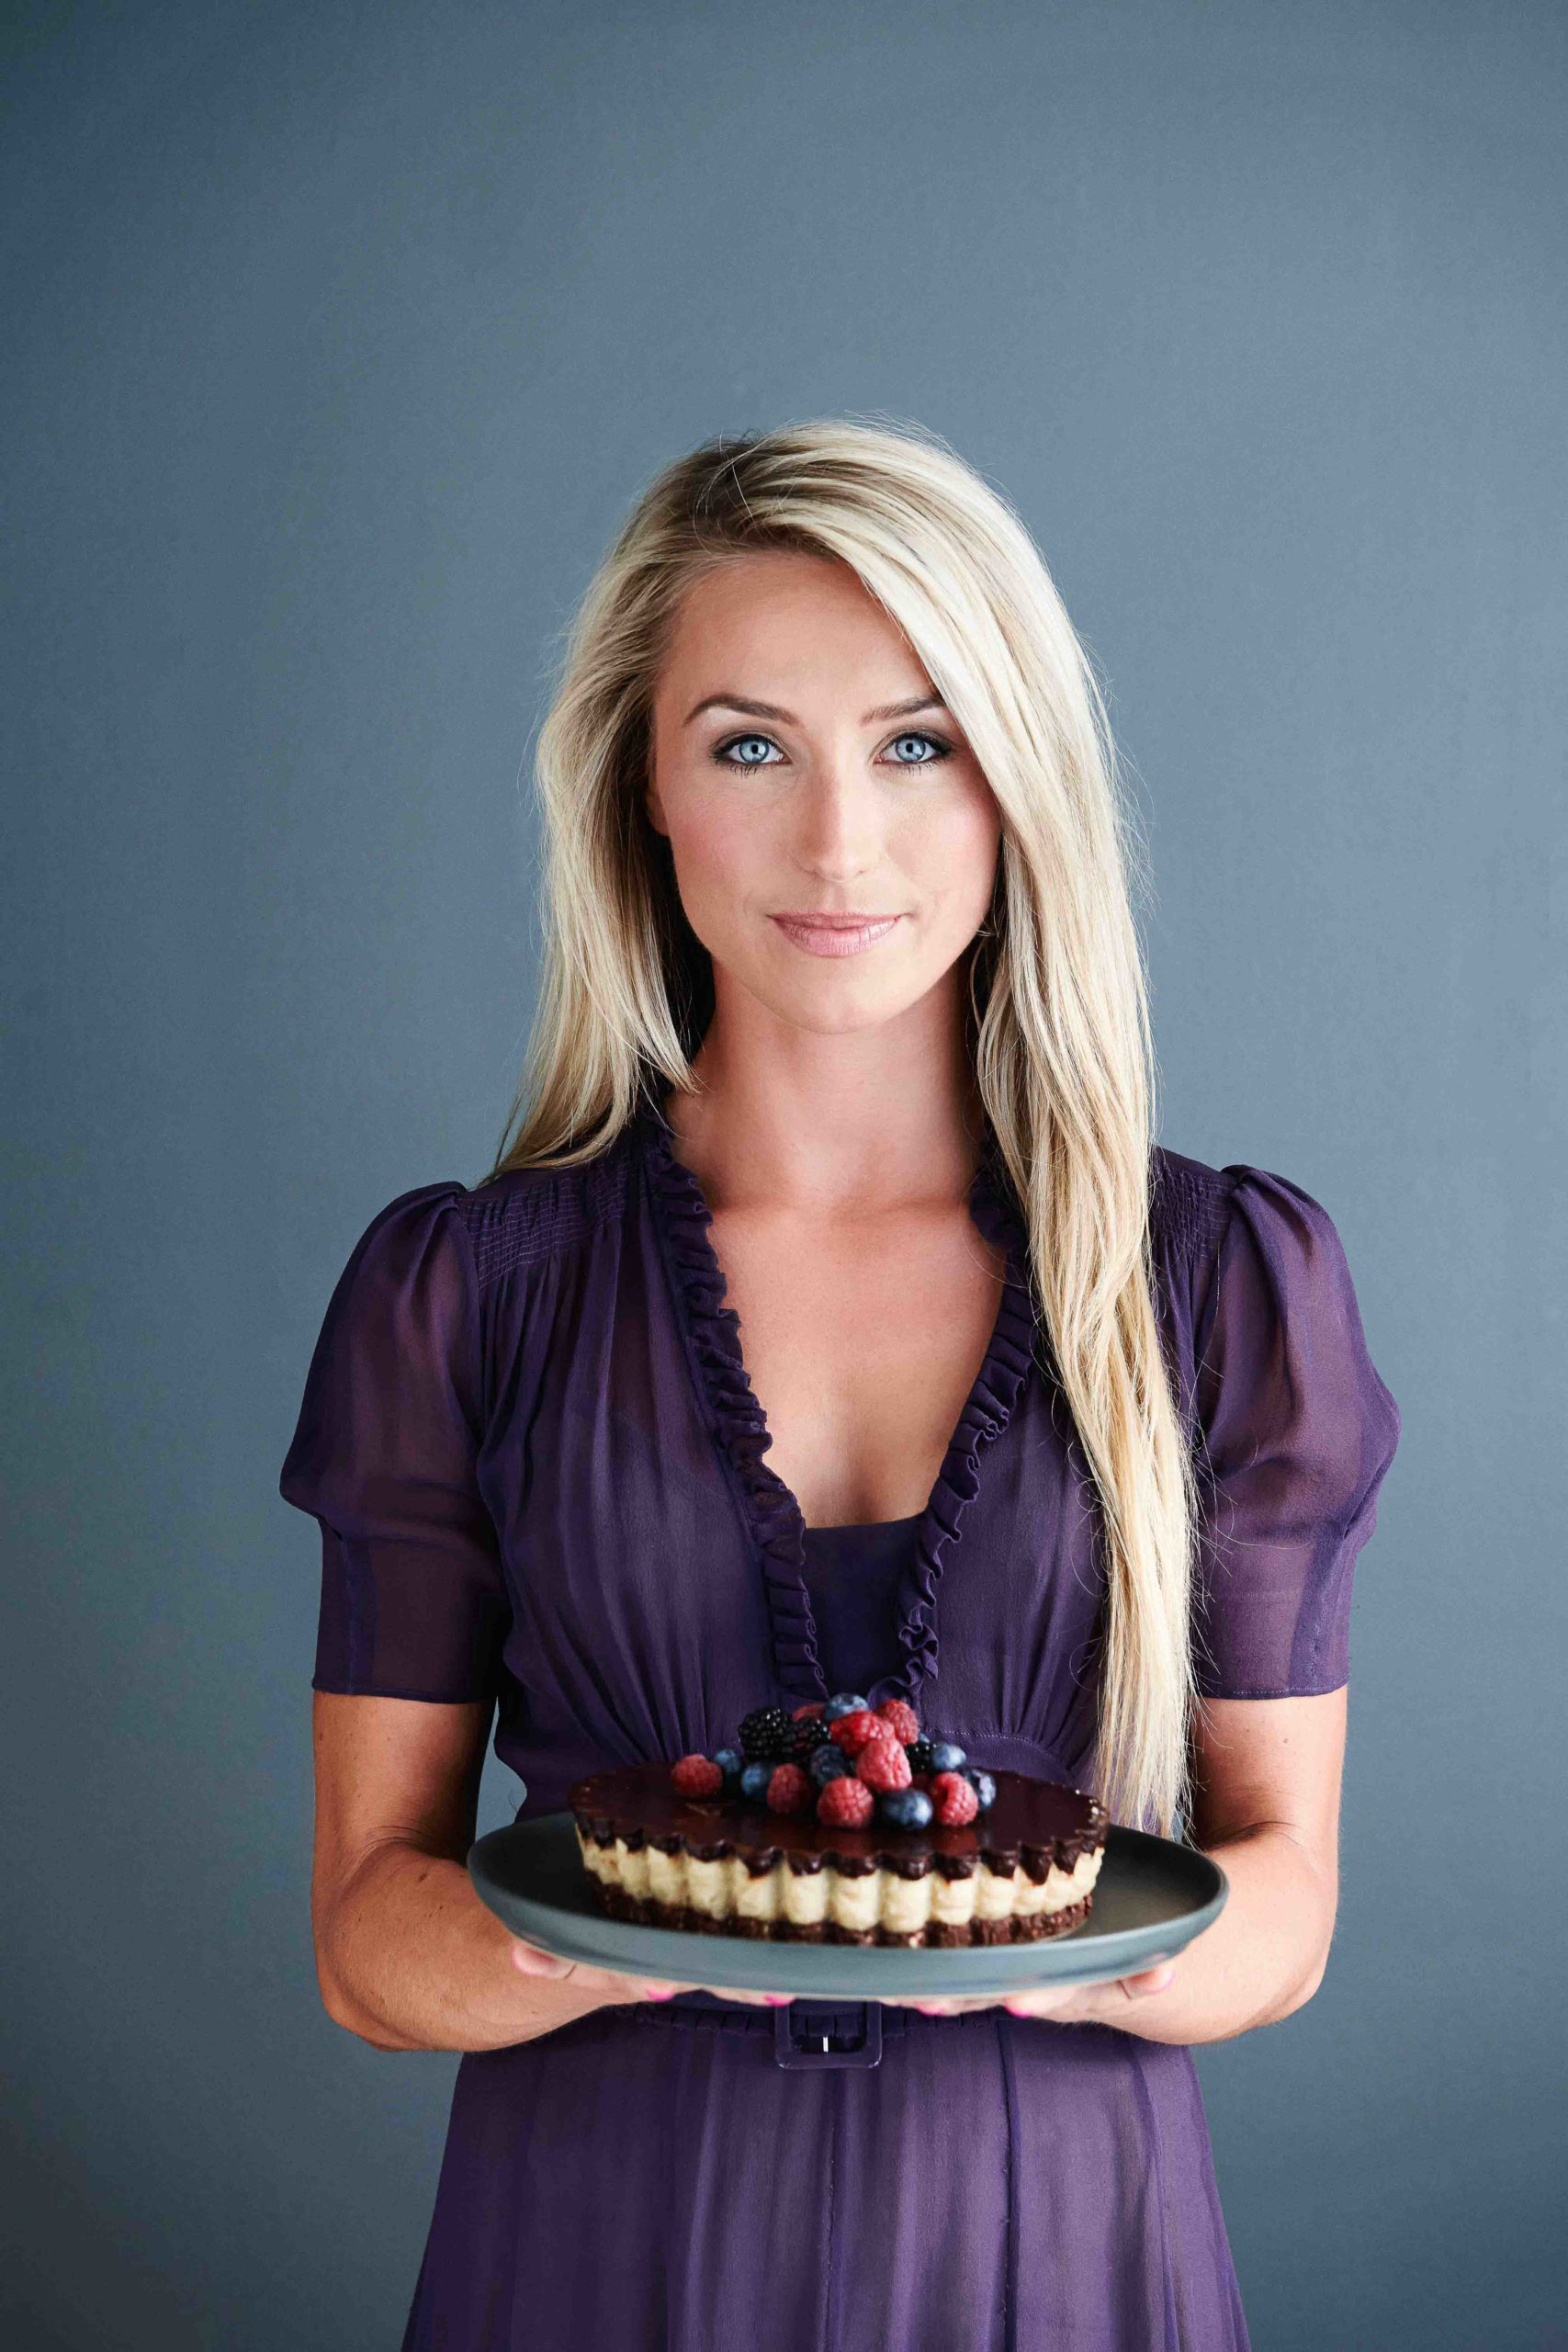 Justyna holding delicious cake